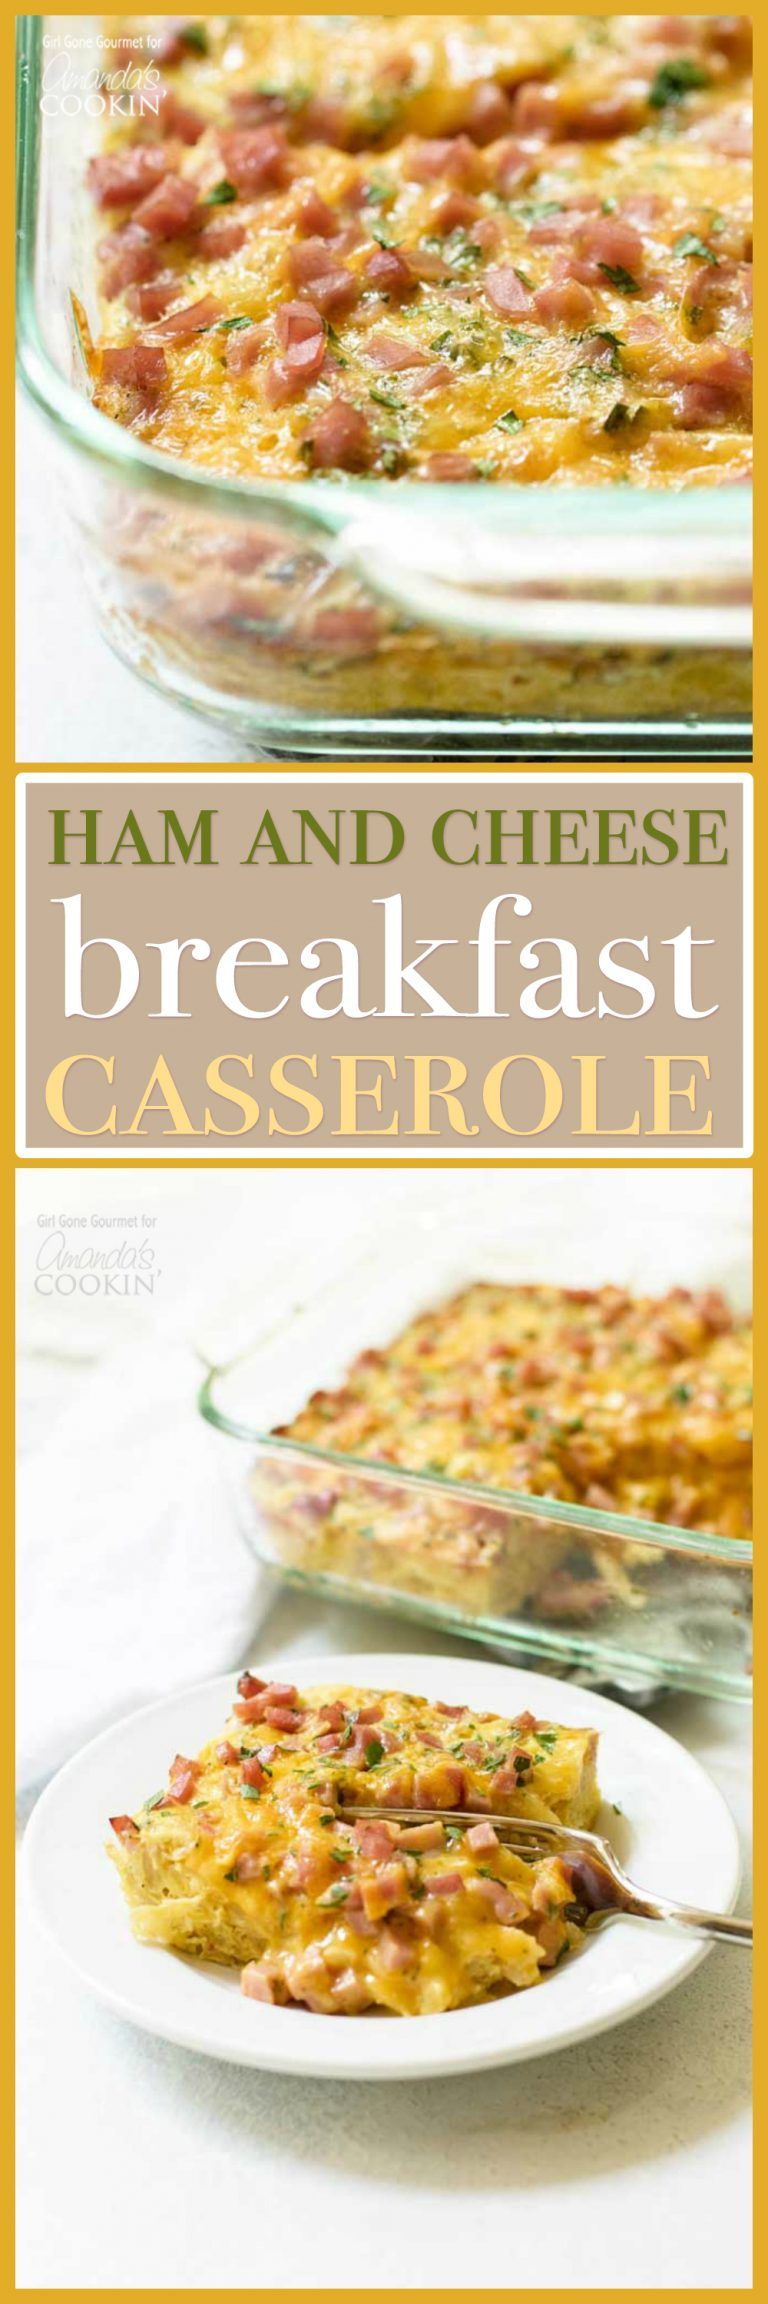 Photo of Breakfast Casserole with Ham and Cheese: an easy, cheesy cas…